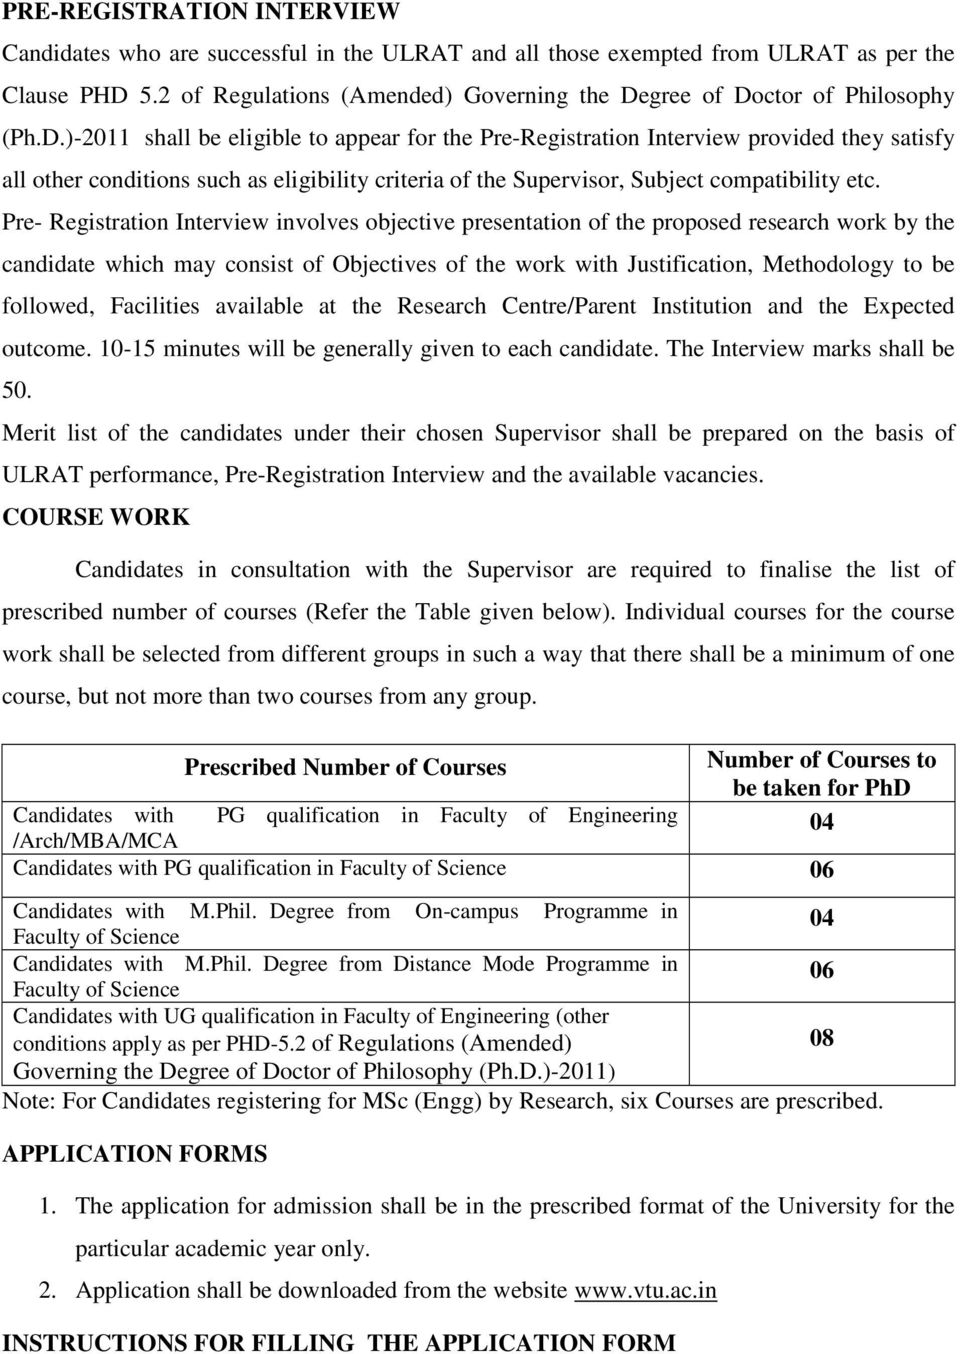 gree of Doctor of Philosophy (Ph.D.)-2011 shall be eligible to appear for the Pre-Registration Interview provided they satisfy all other conditions such as eligibility criteria of the Supervisor, Subject compatibility etc.